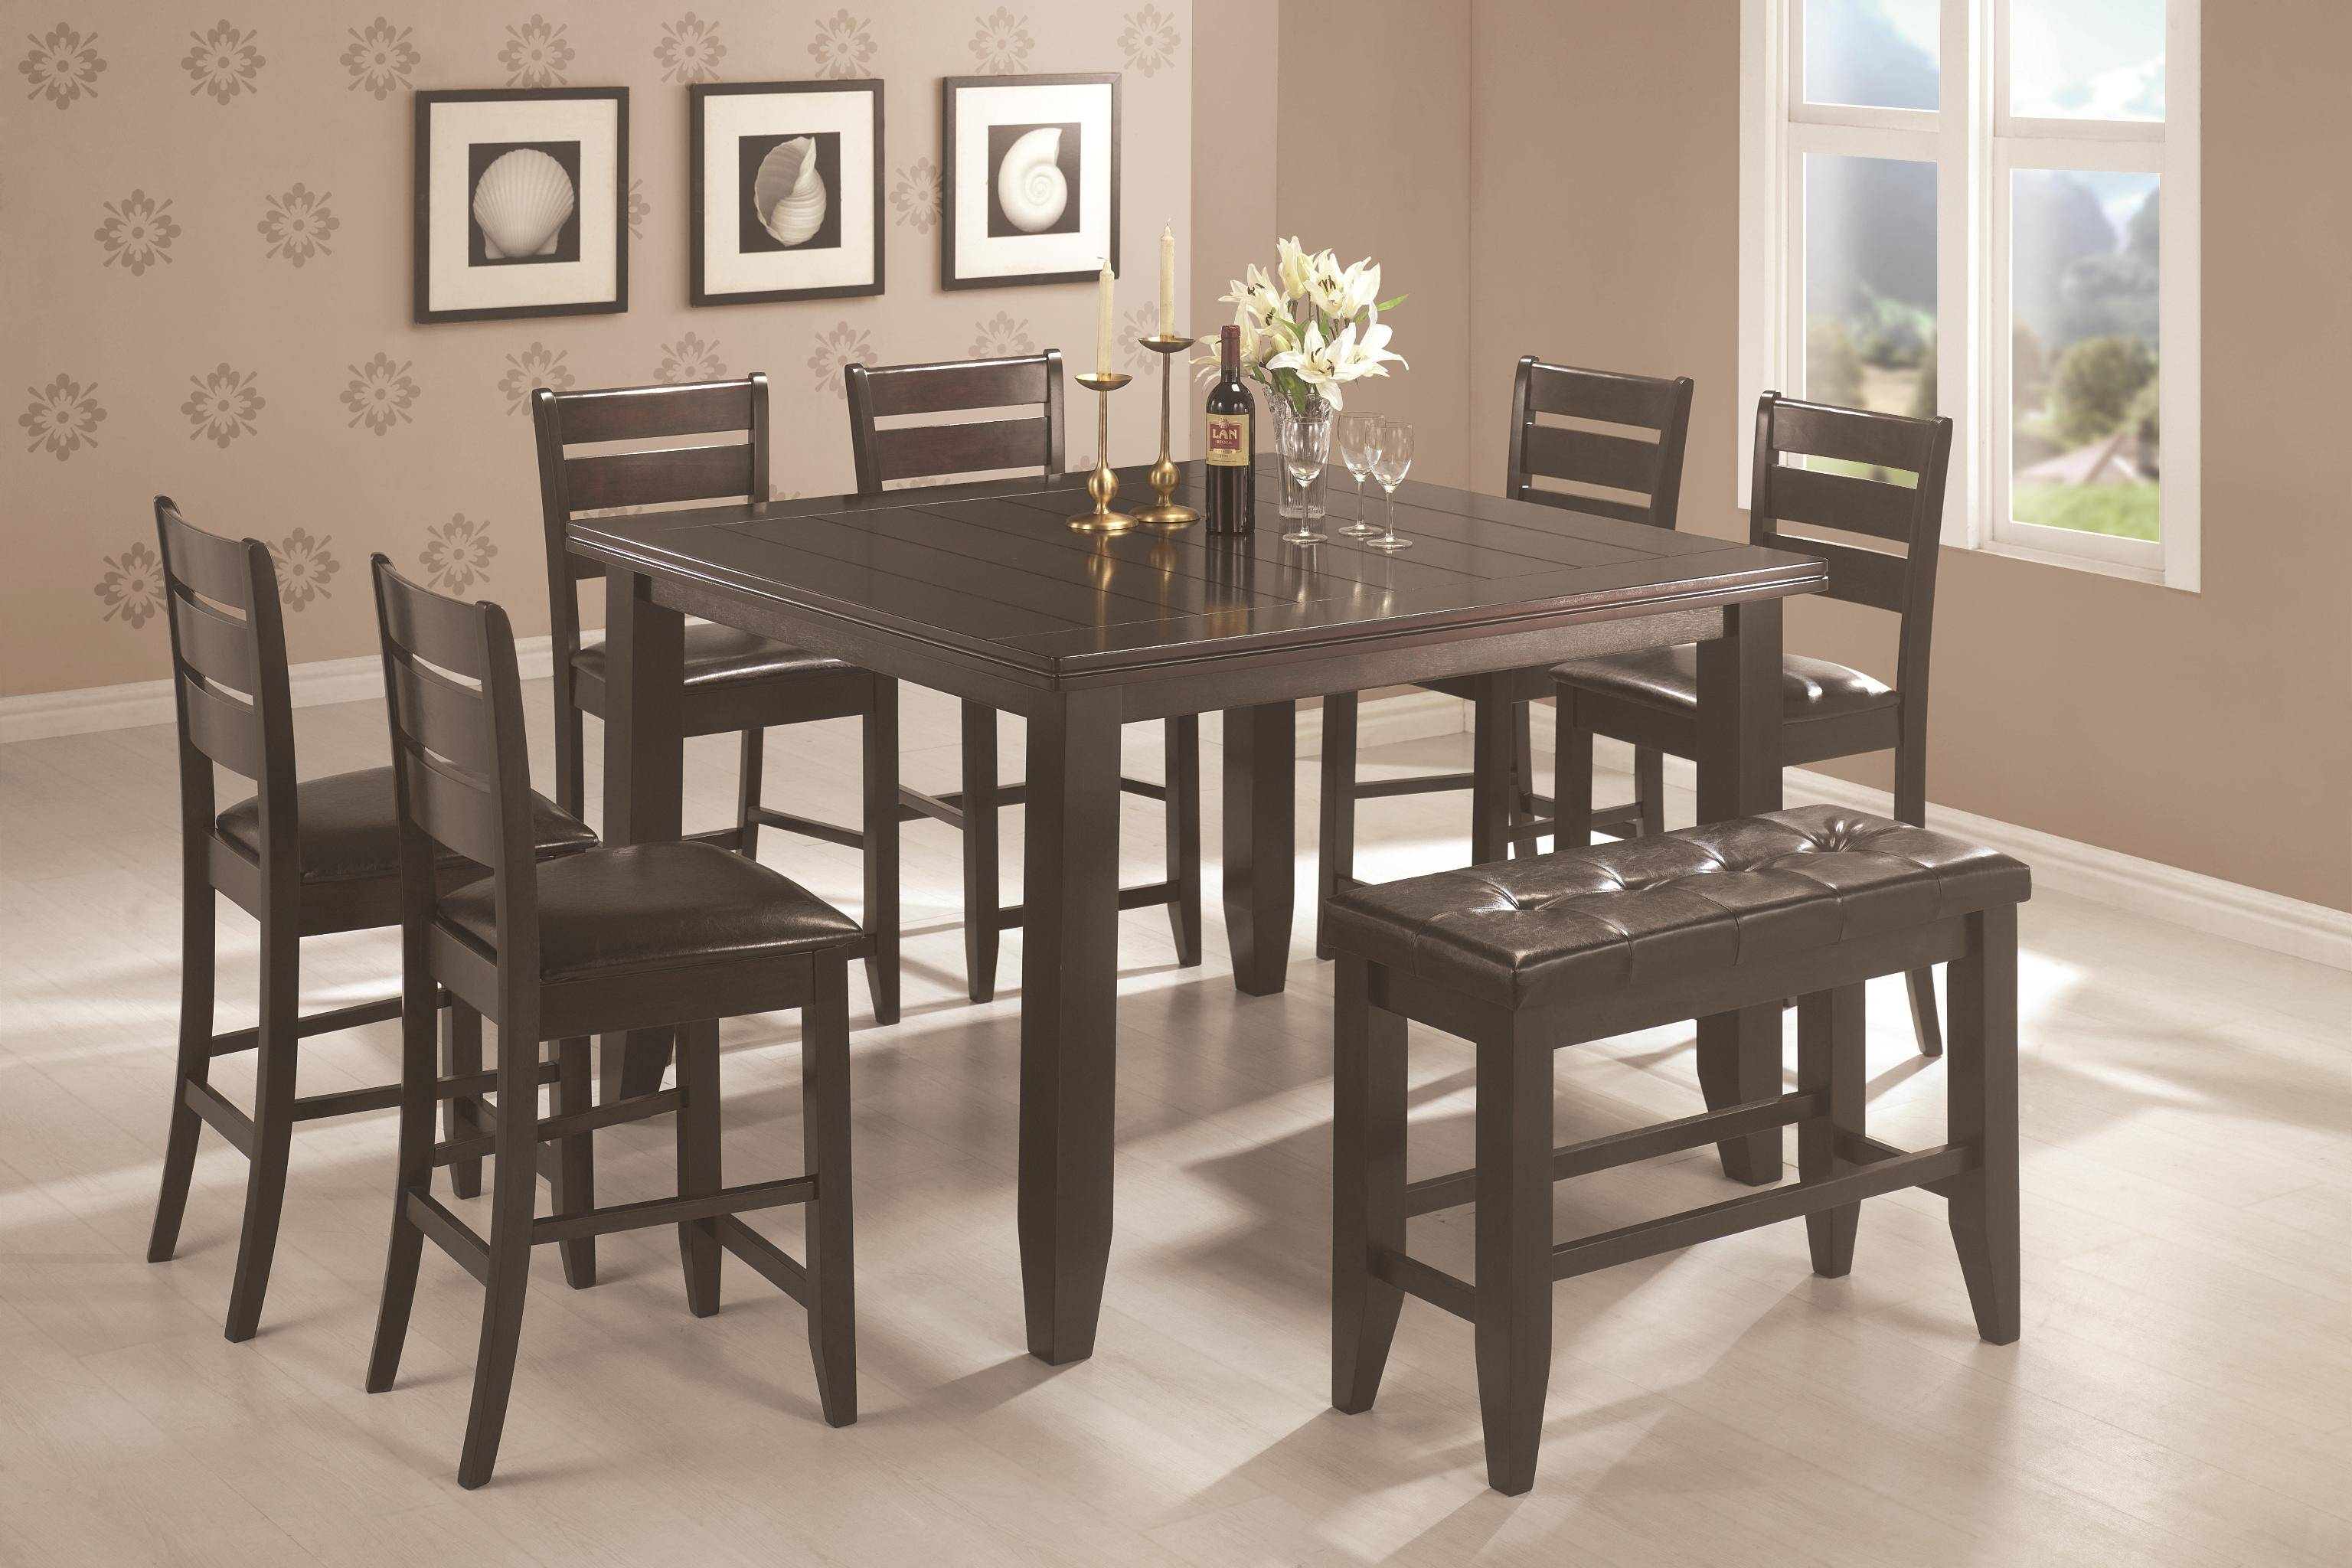 Coaster Retro Dining Set Home Design Ideas and